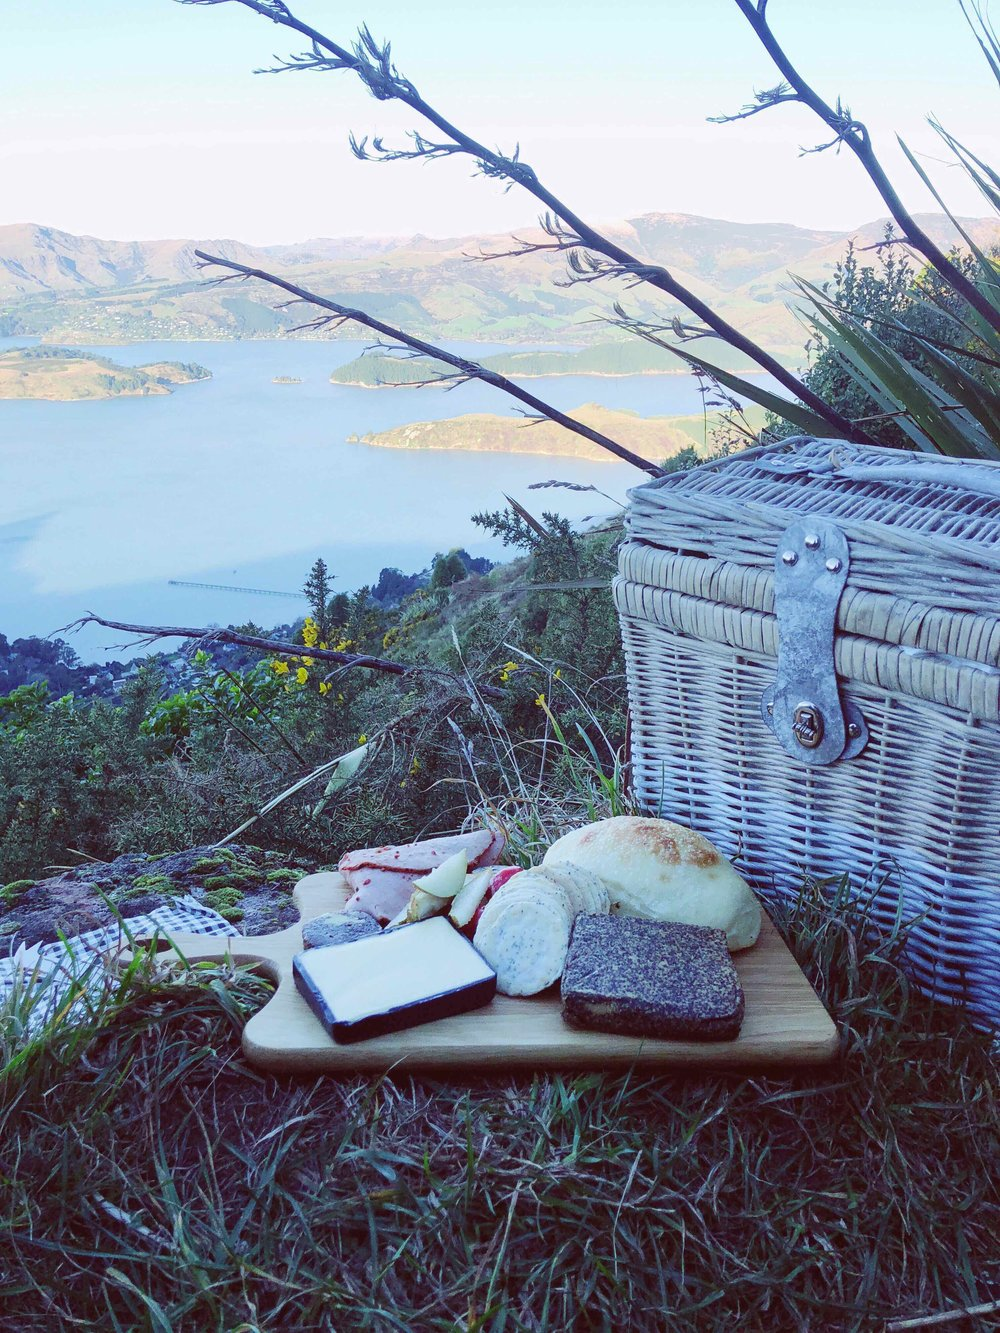 5. PACK A PICNIC WITH LOCAL BREADS AND CHEESES AND FIND THIS SPOT ON SUMMIT ROAD